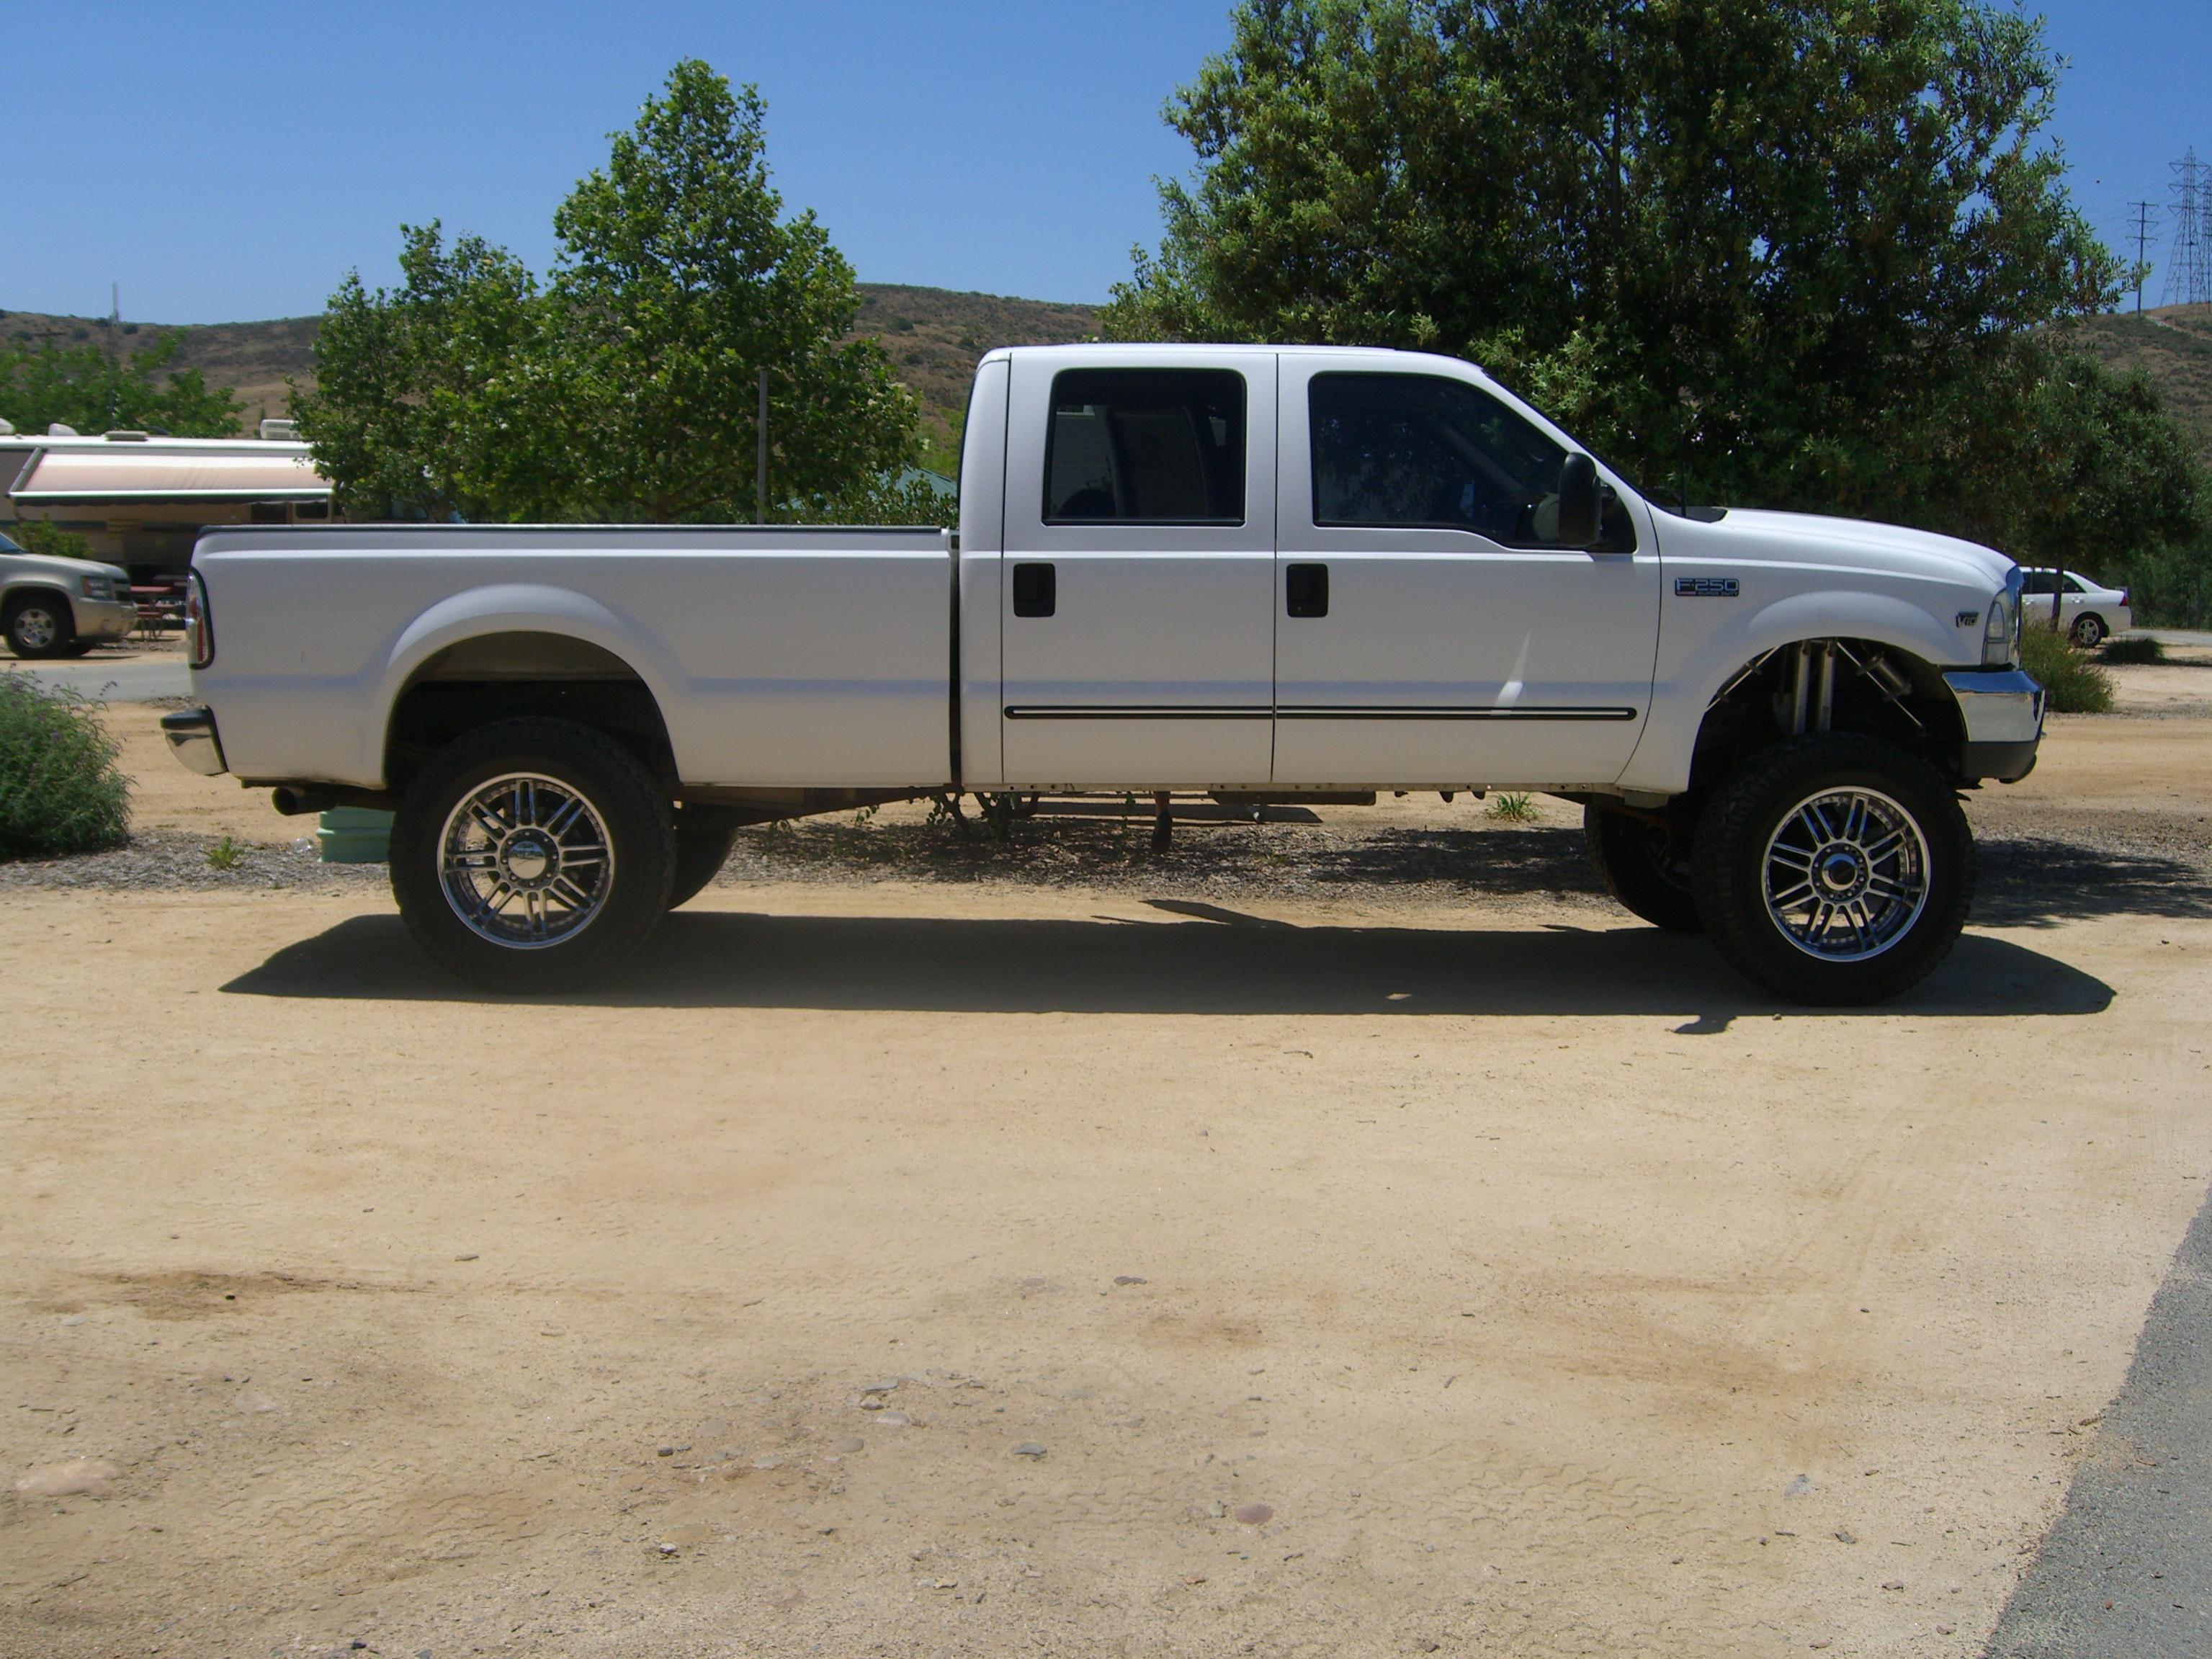 Truck Bed Spray Liner >> Lifted Ford Crew Cab Long Bed 4x4 SuperDuty - Kawasaki Teryx Forum